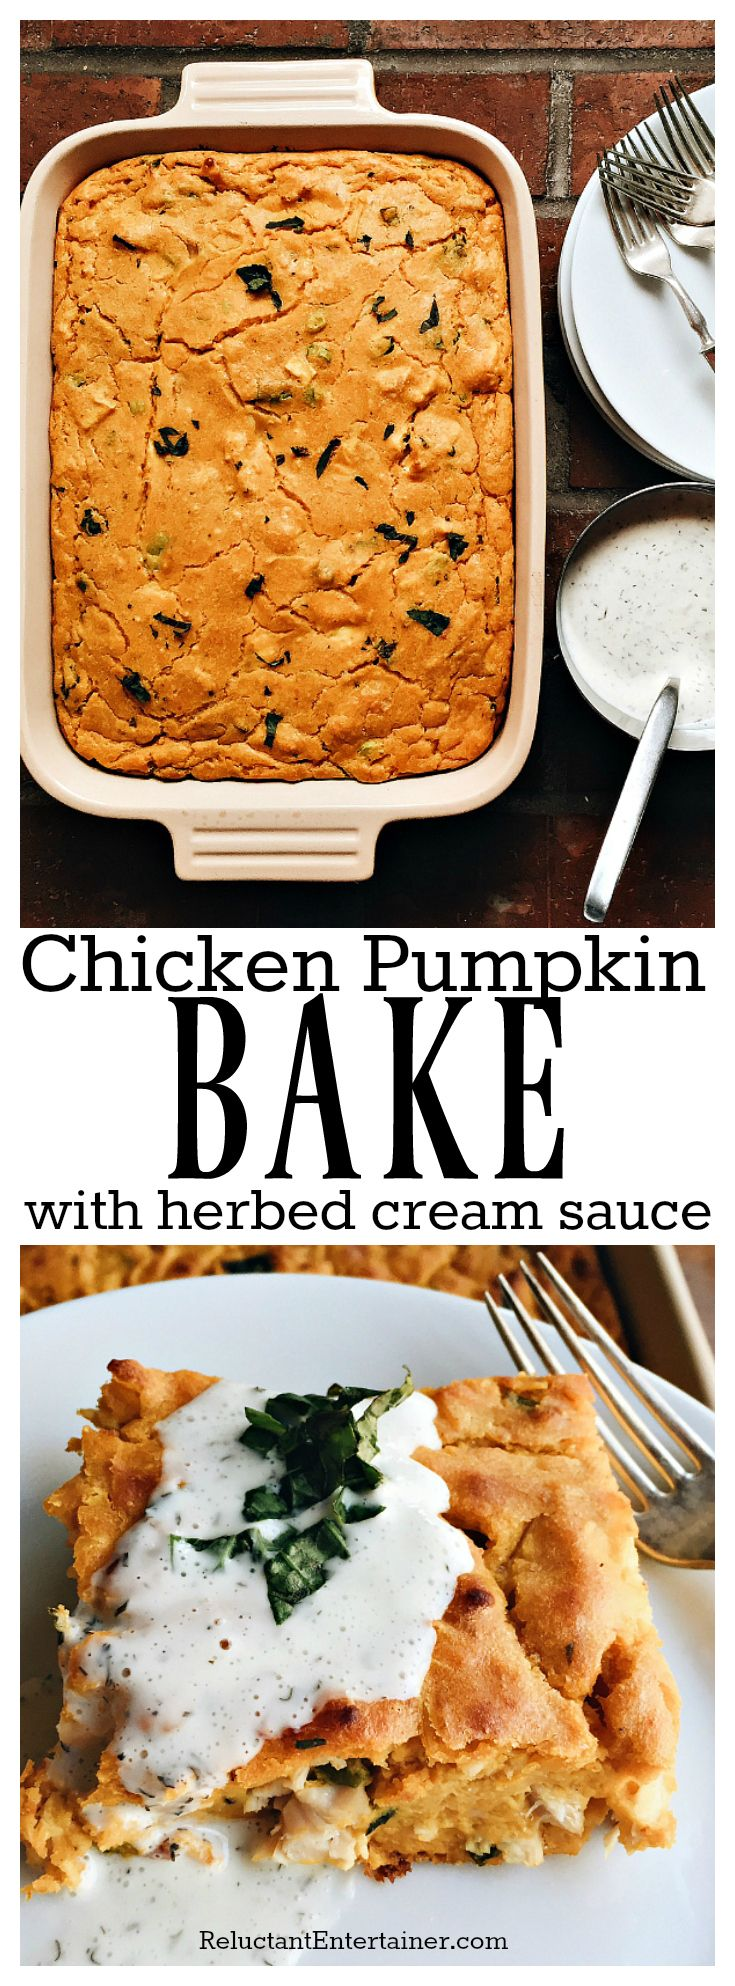 Chicken Pumpkin Bake with Herbed Cream Sauce is the ultimate fall dish to make…